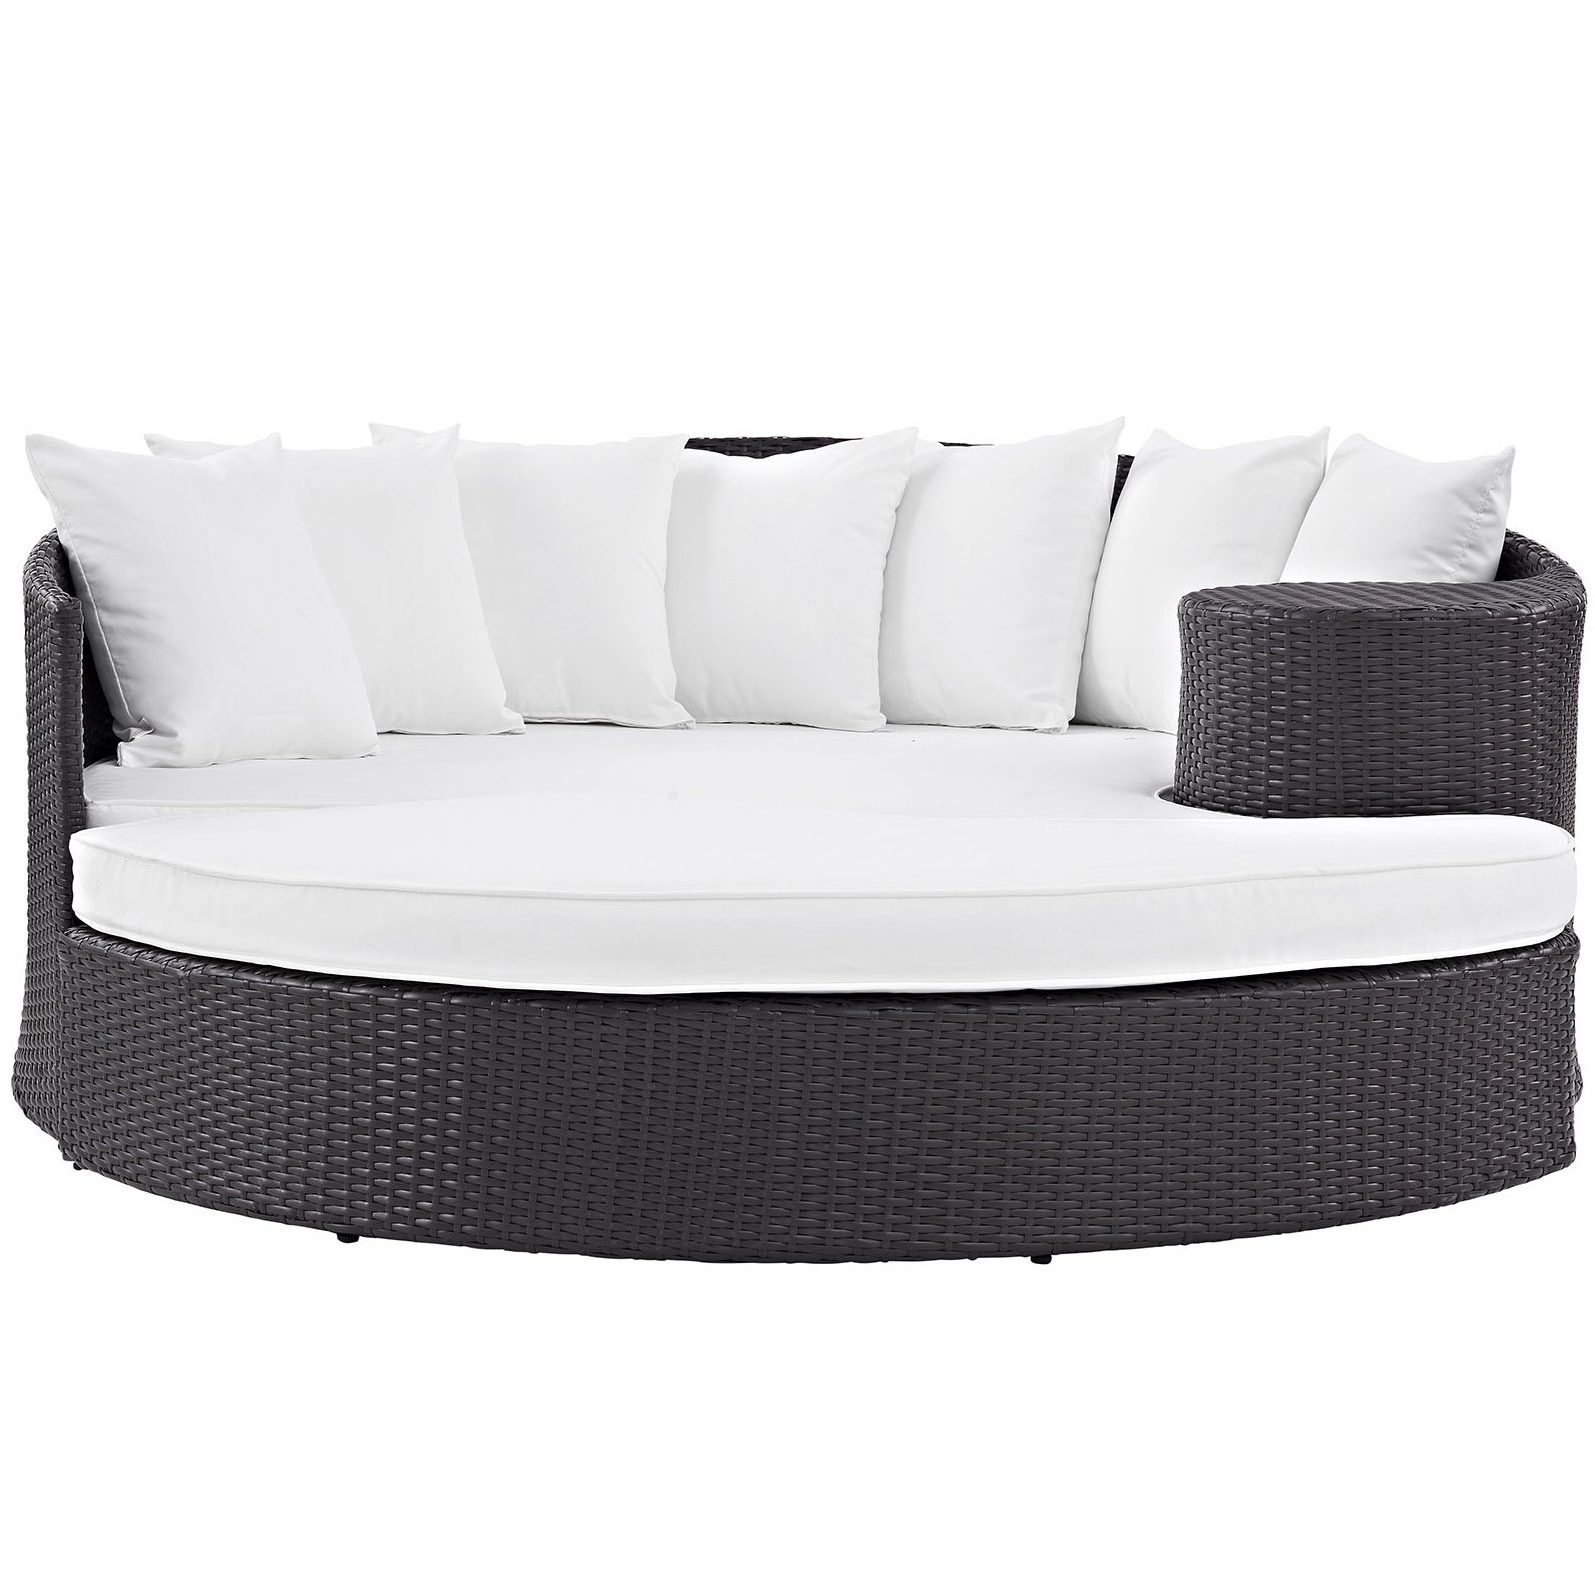 2020 Lavina Outdoor Patio Daybeds With Cushions In Brentwood Patio Daybed With Cushions (View 1 of 20)